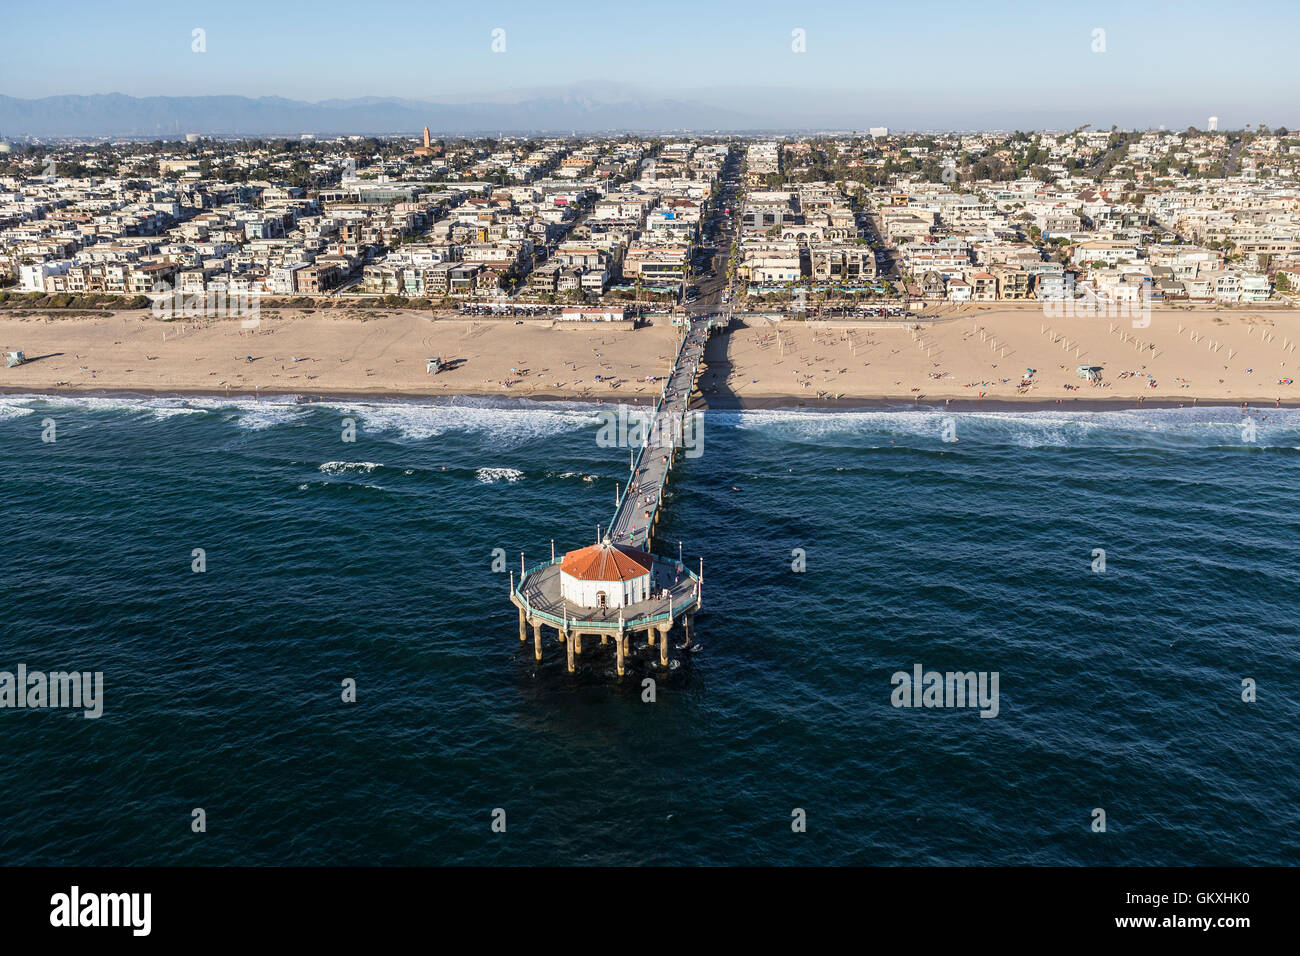 Afternoon aerial view of popular Manhattan Beach Pier near Los Angeles, California. - Stock Image